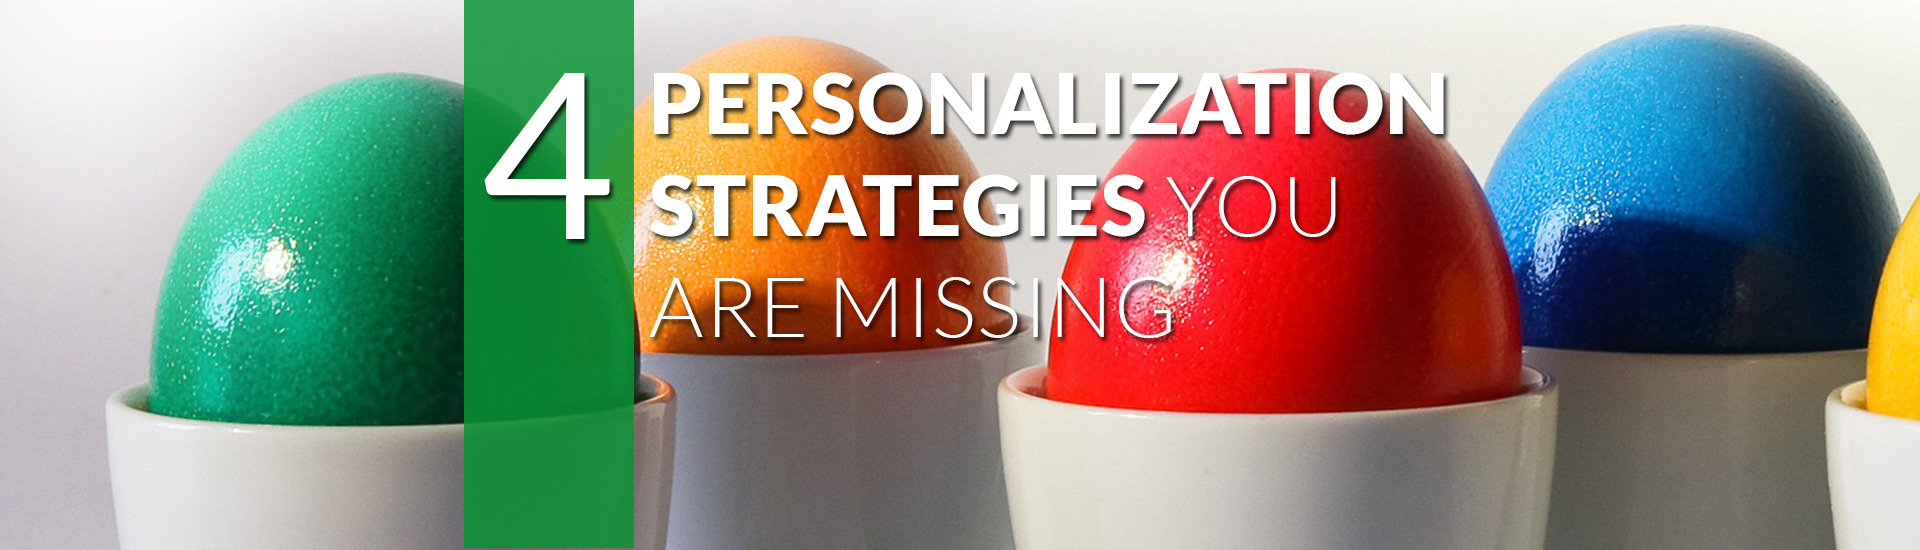 4 highly-effective personalization strategies